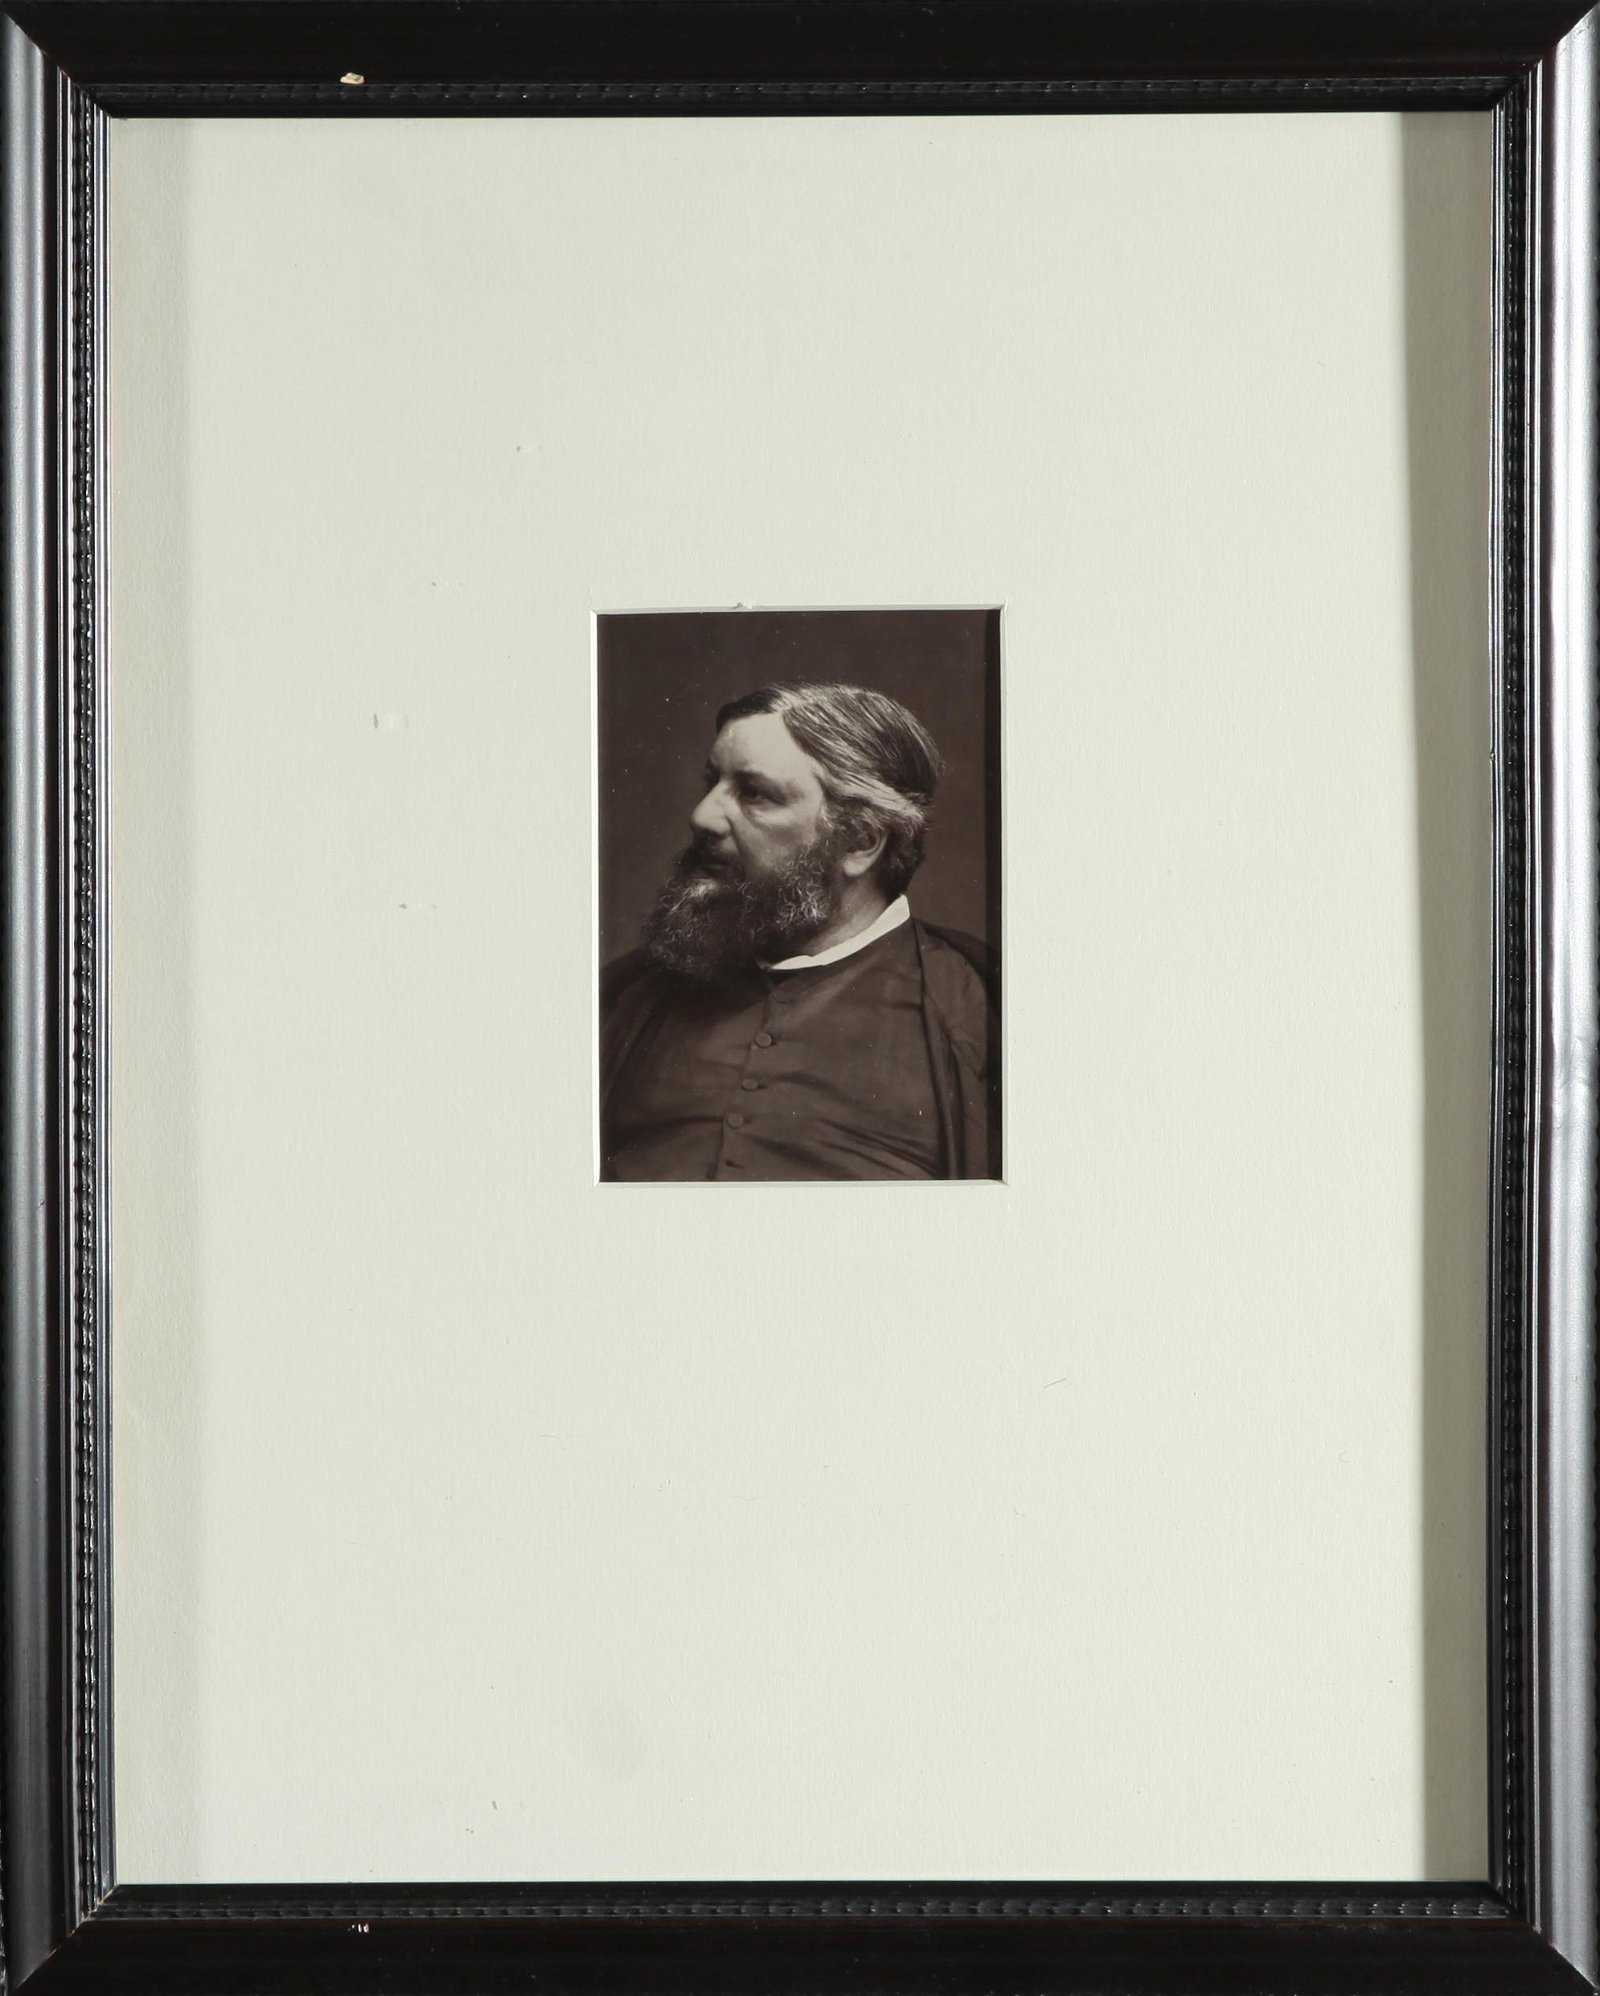 Woodburytype Photograph of Gustave Courbet